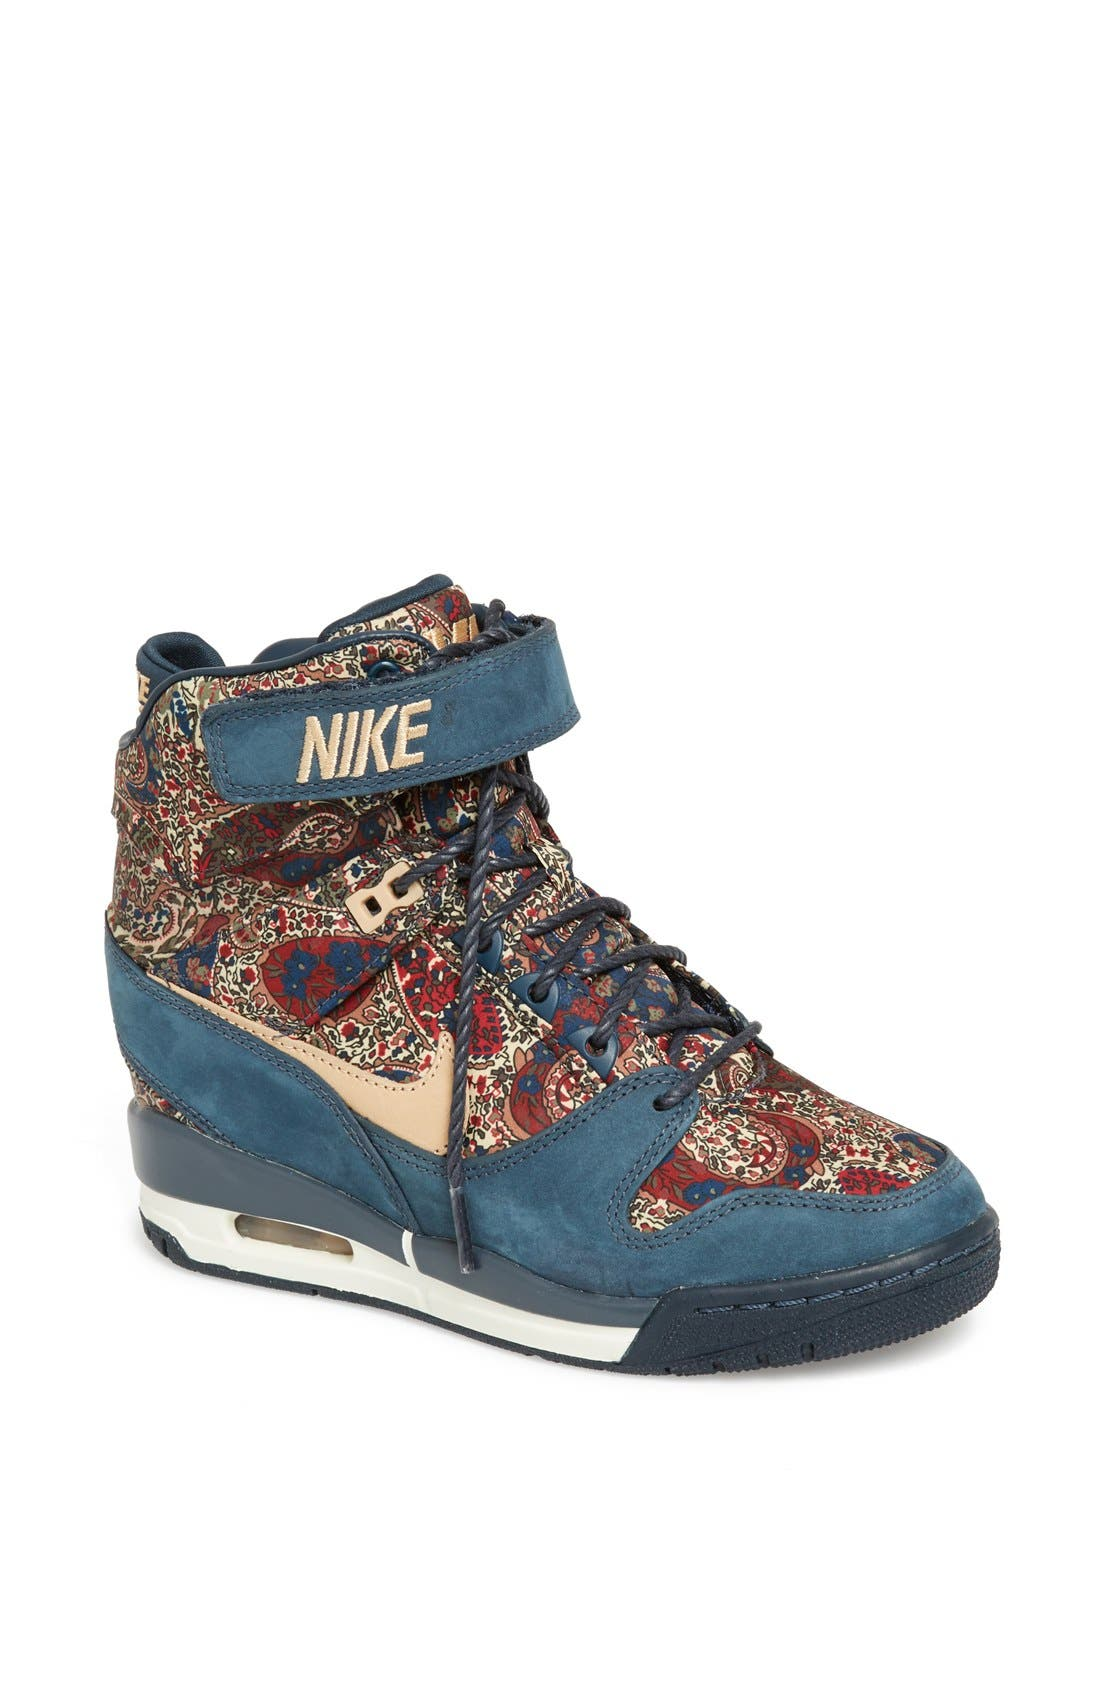 Main Image - Nike 'Air Revolution Sky Hi Liberty' Wedge Sneaker (Women)